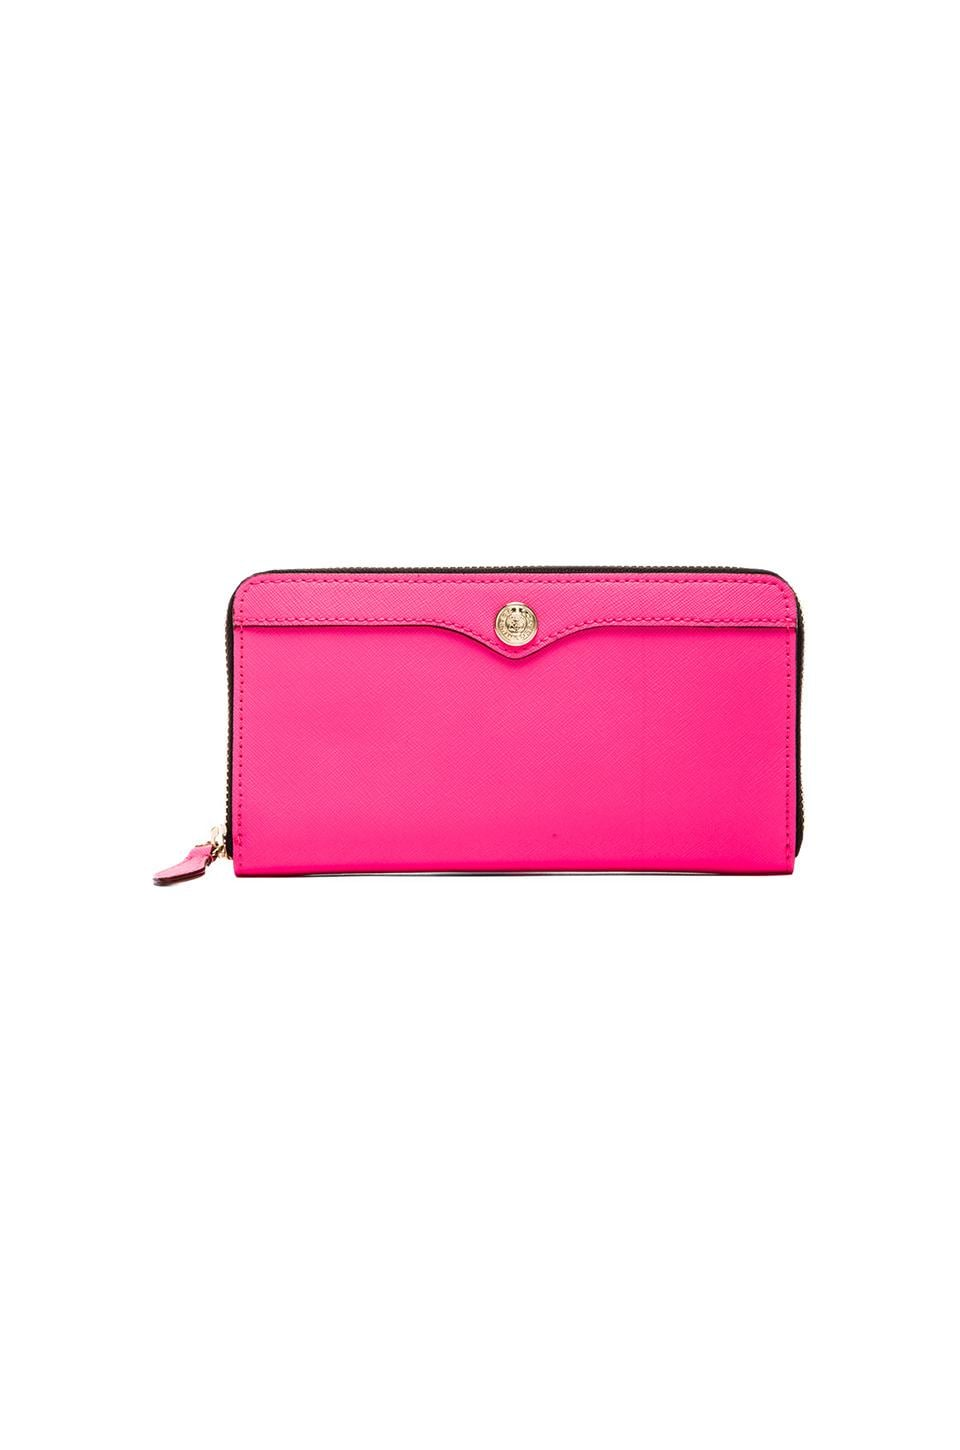 Rebecca Minkoff Luma Large Zip Wallet in Neon Pink